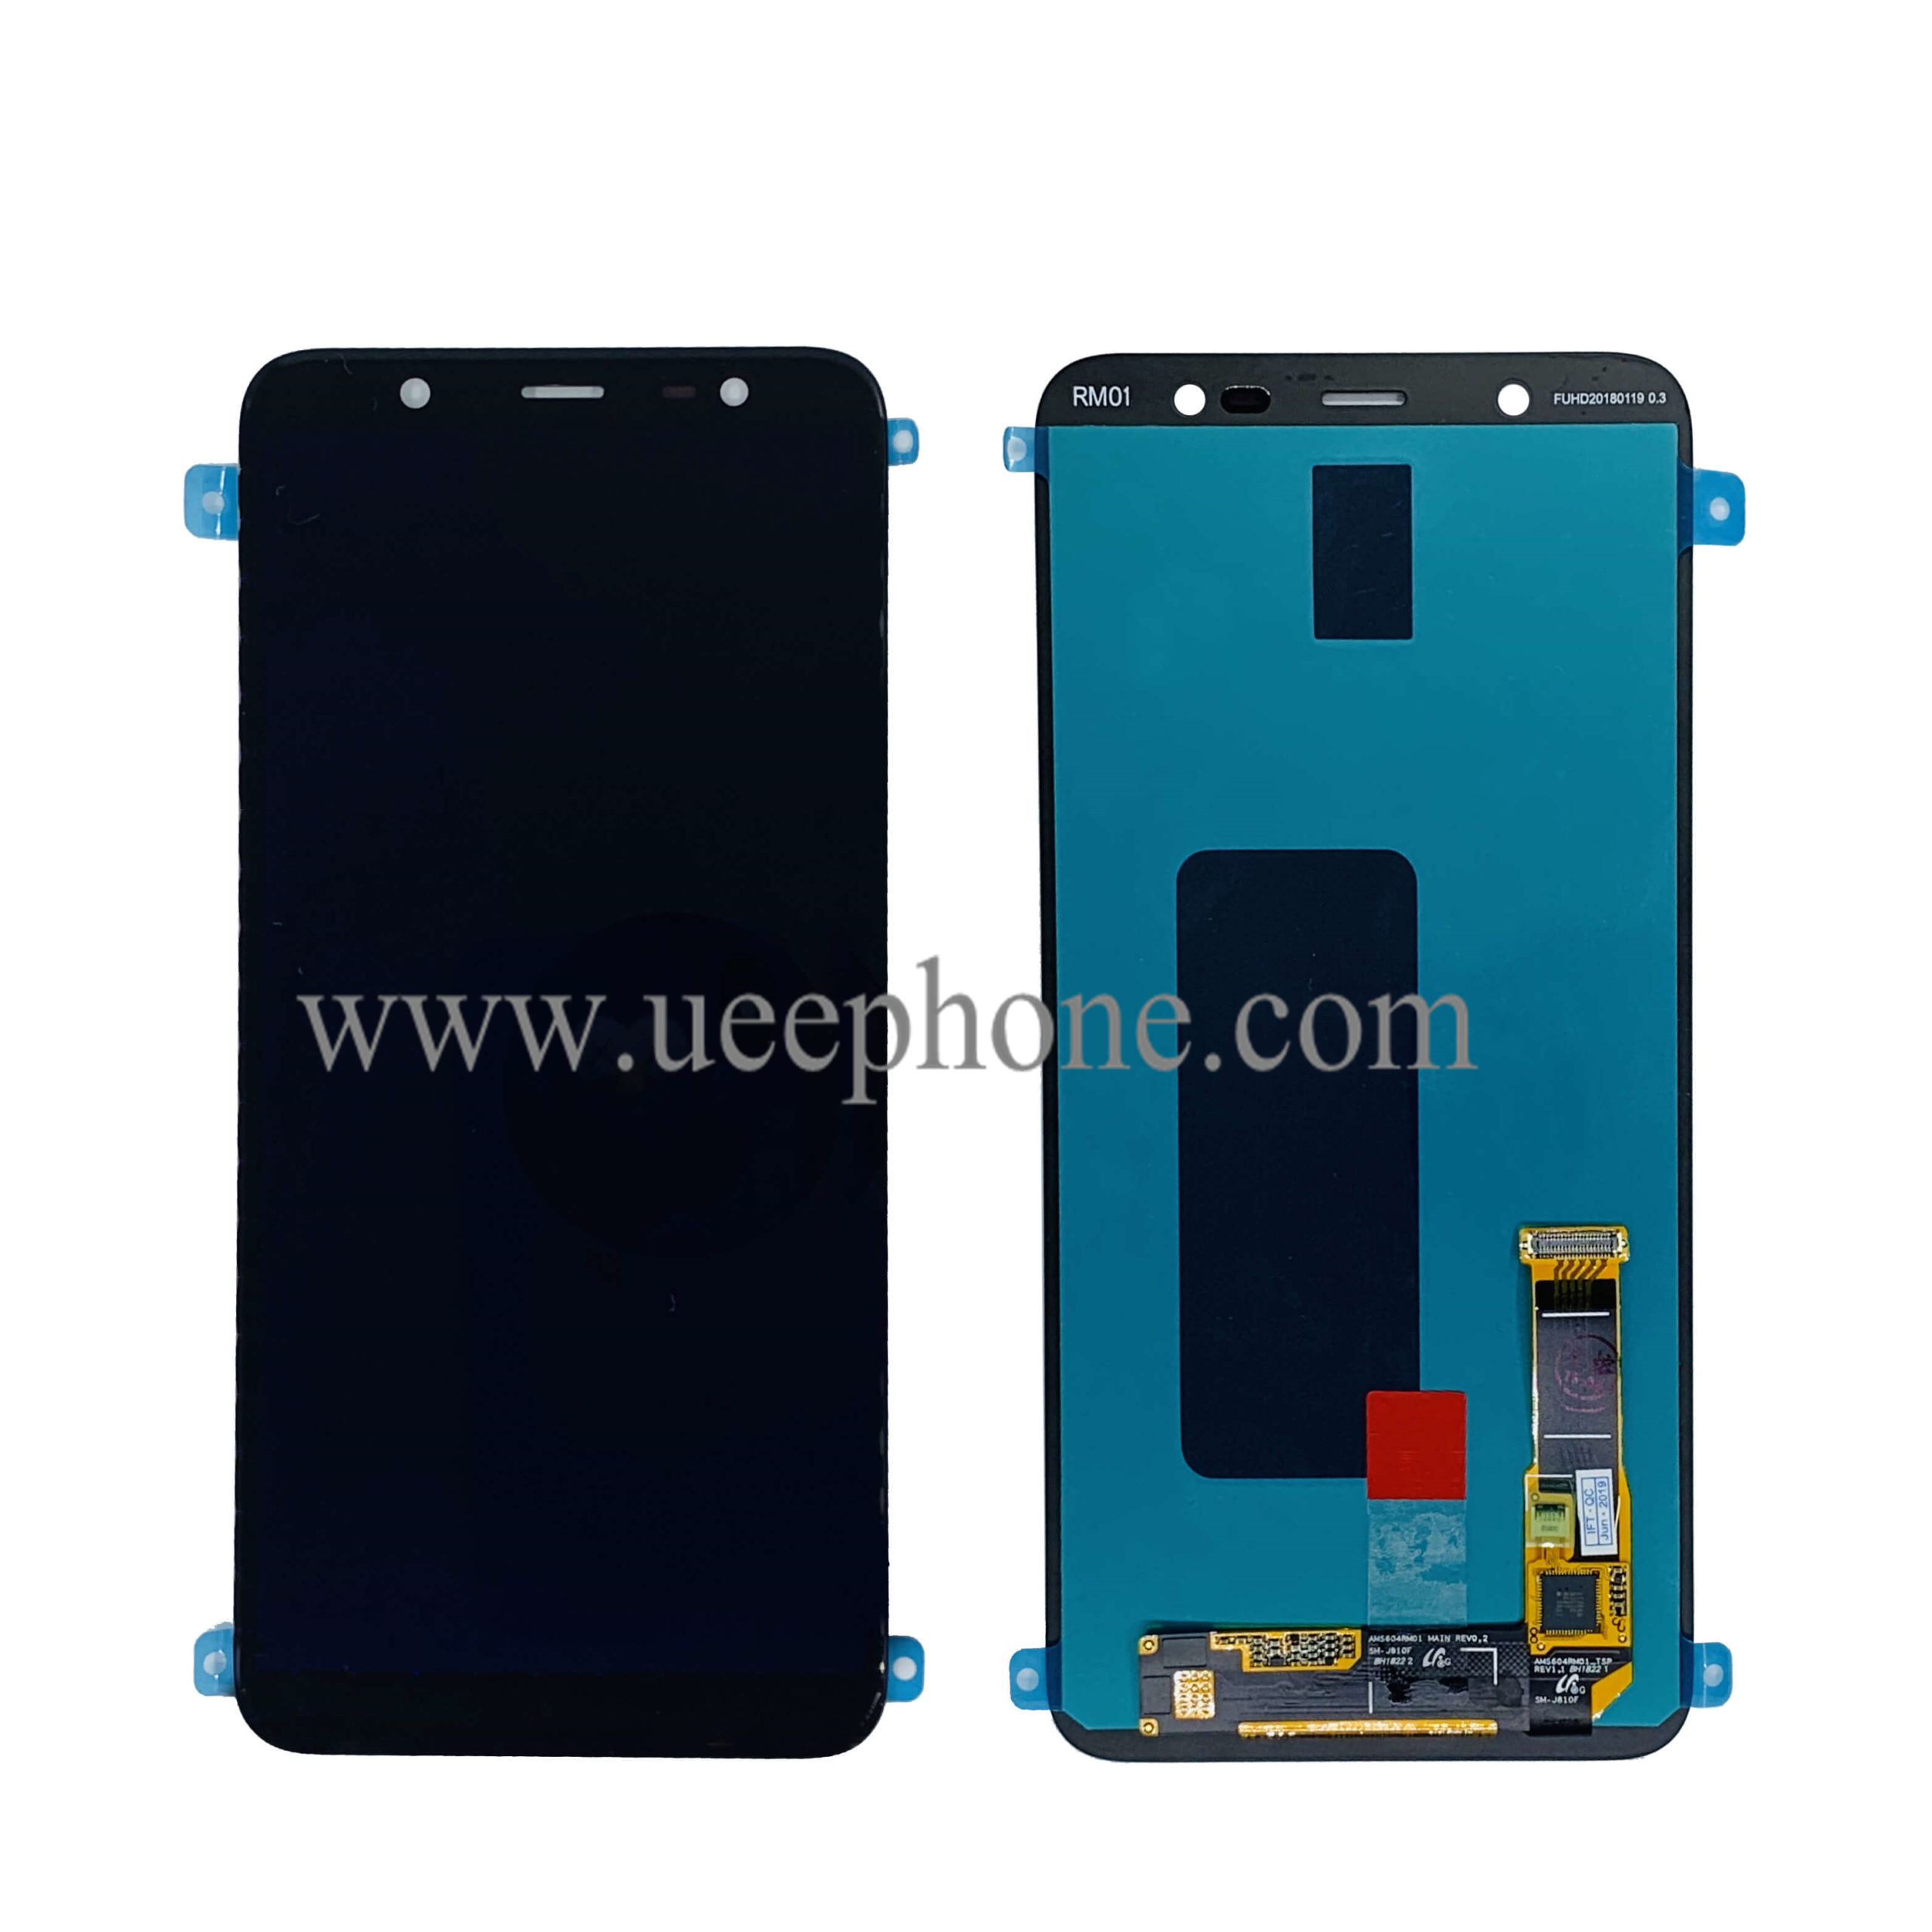 Samsung Galaxy J8 2018 J810 LCD Screen Replacement Manufacturer